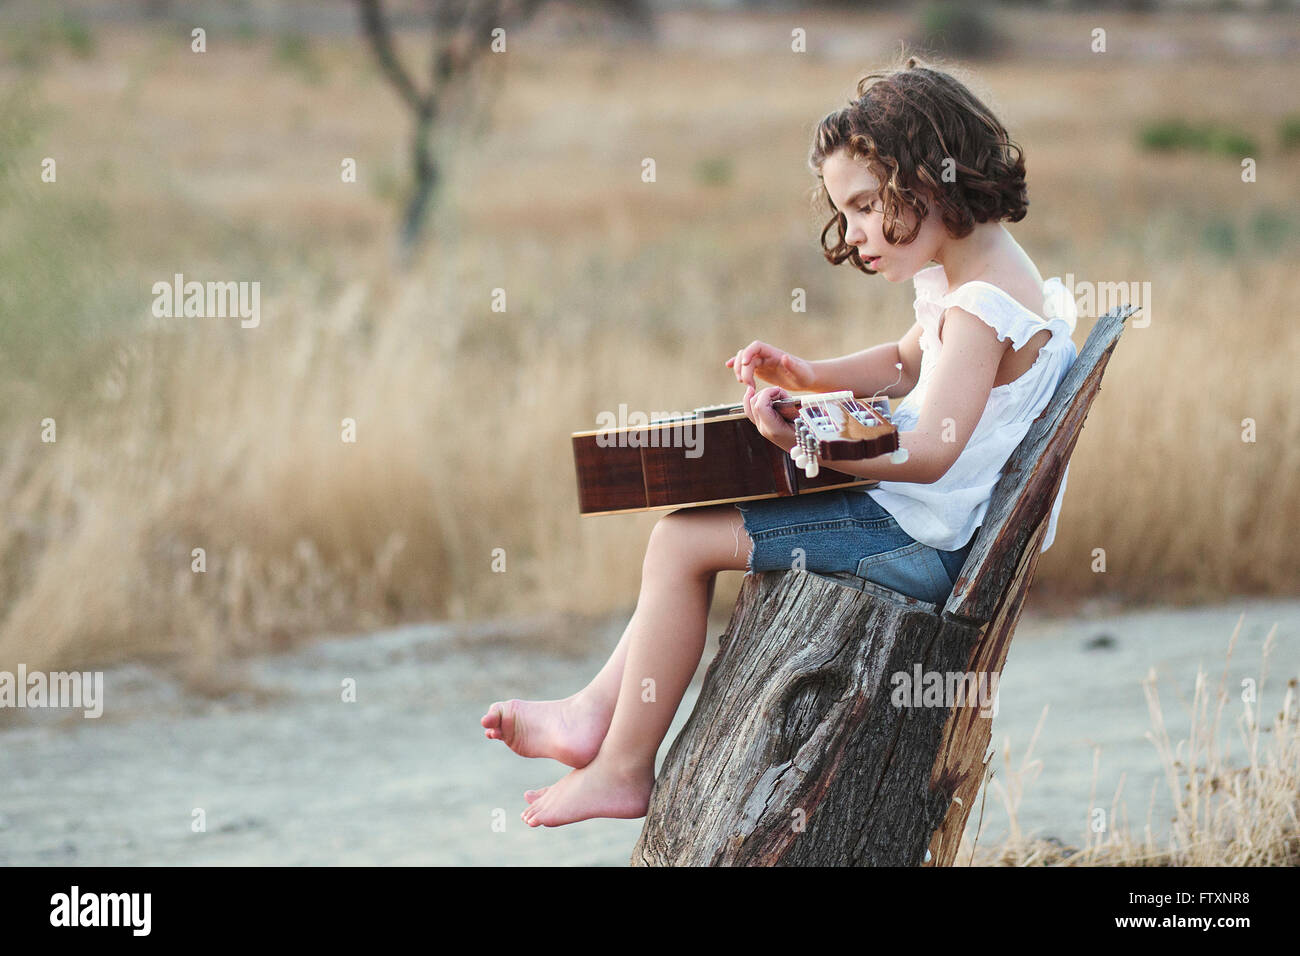 Girl sitting in a field playing the guitar - Stock Image